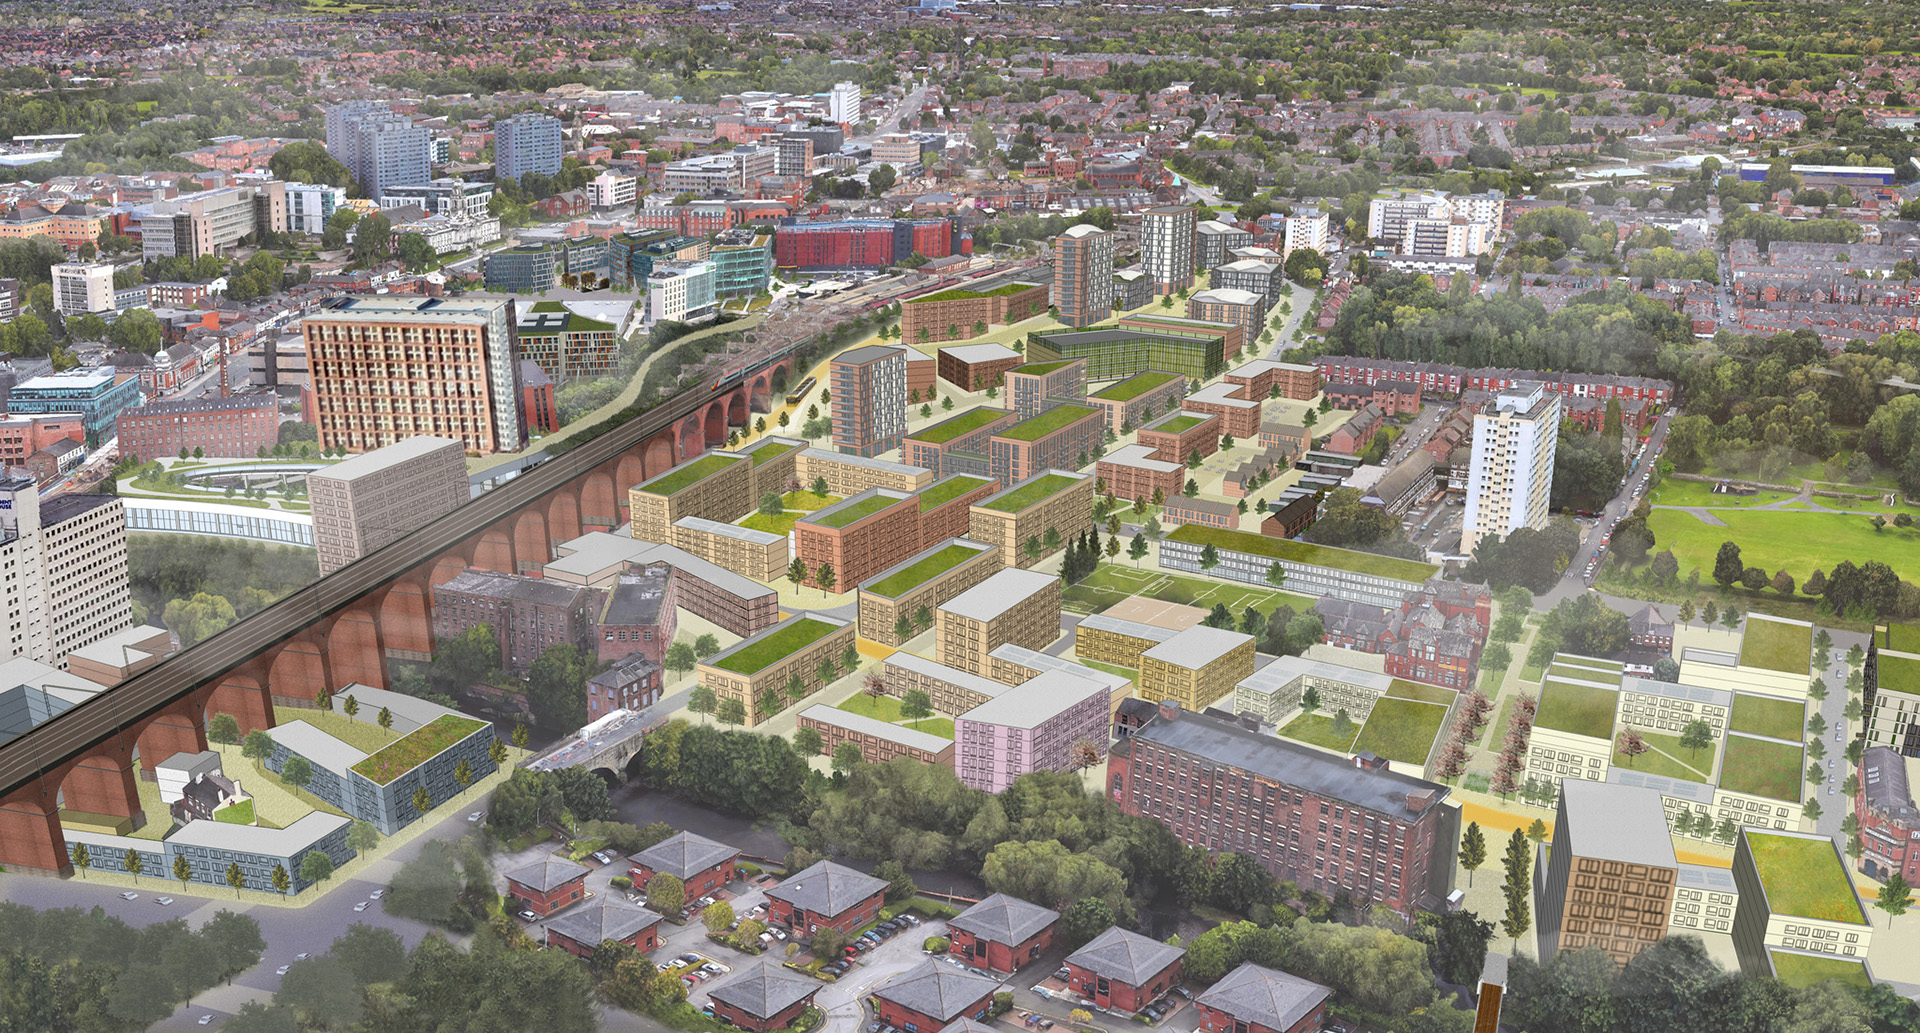 Transformational vision unveiled for Stockport Town Centre West